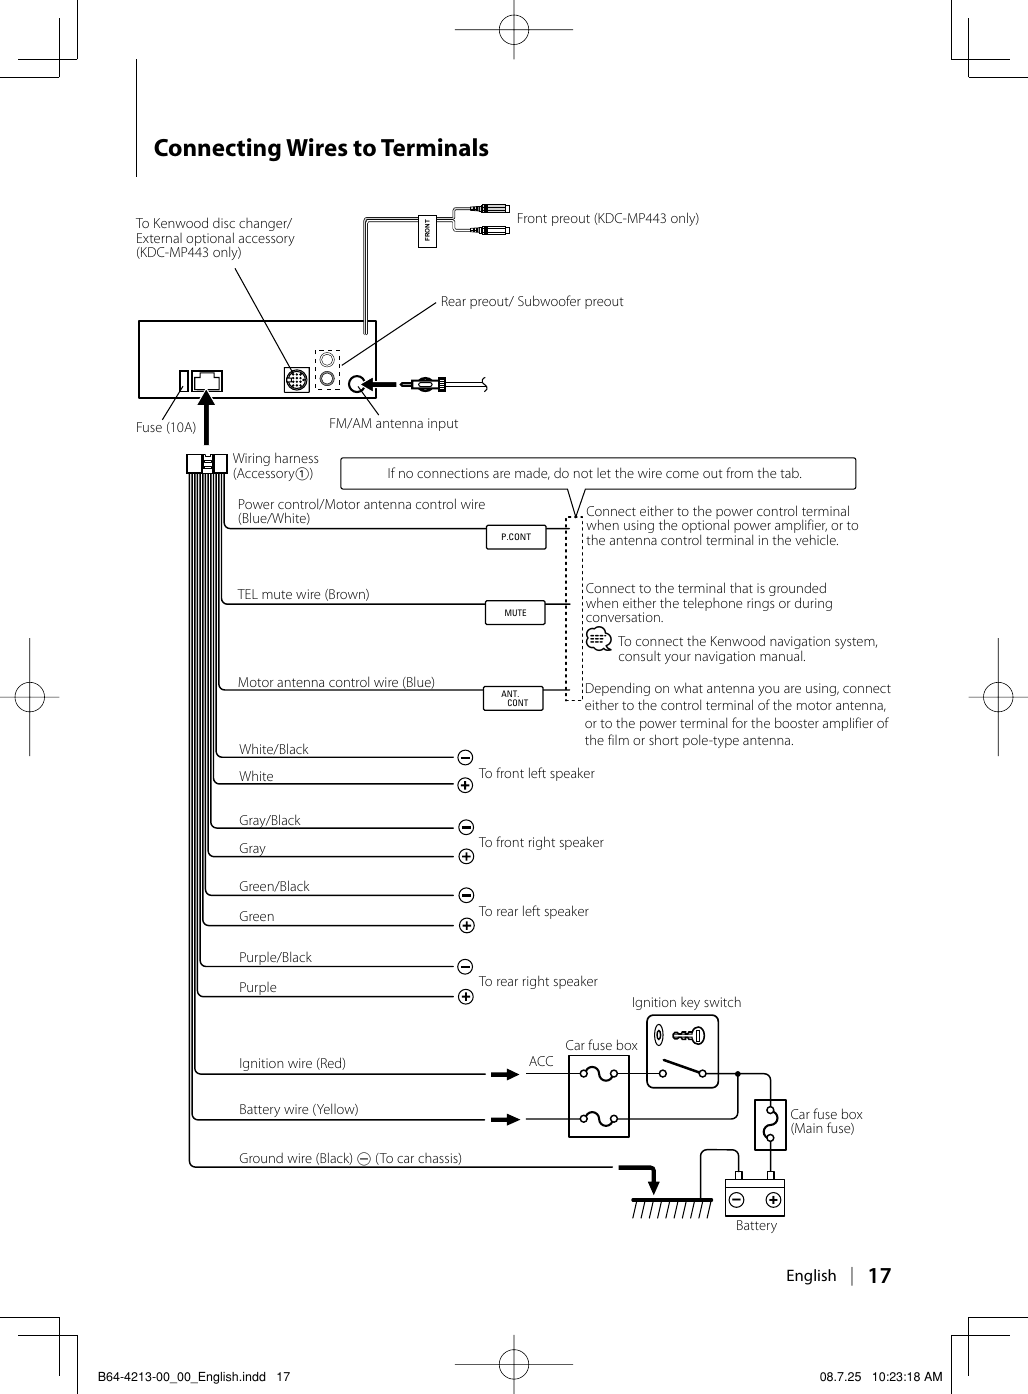 Kenwood Stereo Wiring Diagram from usermanual.wiki